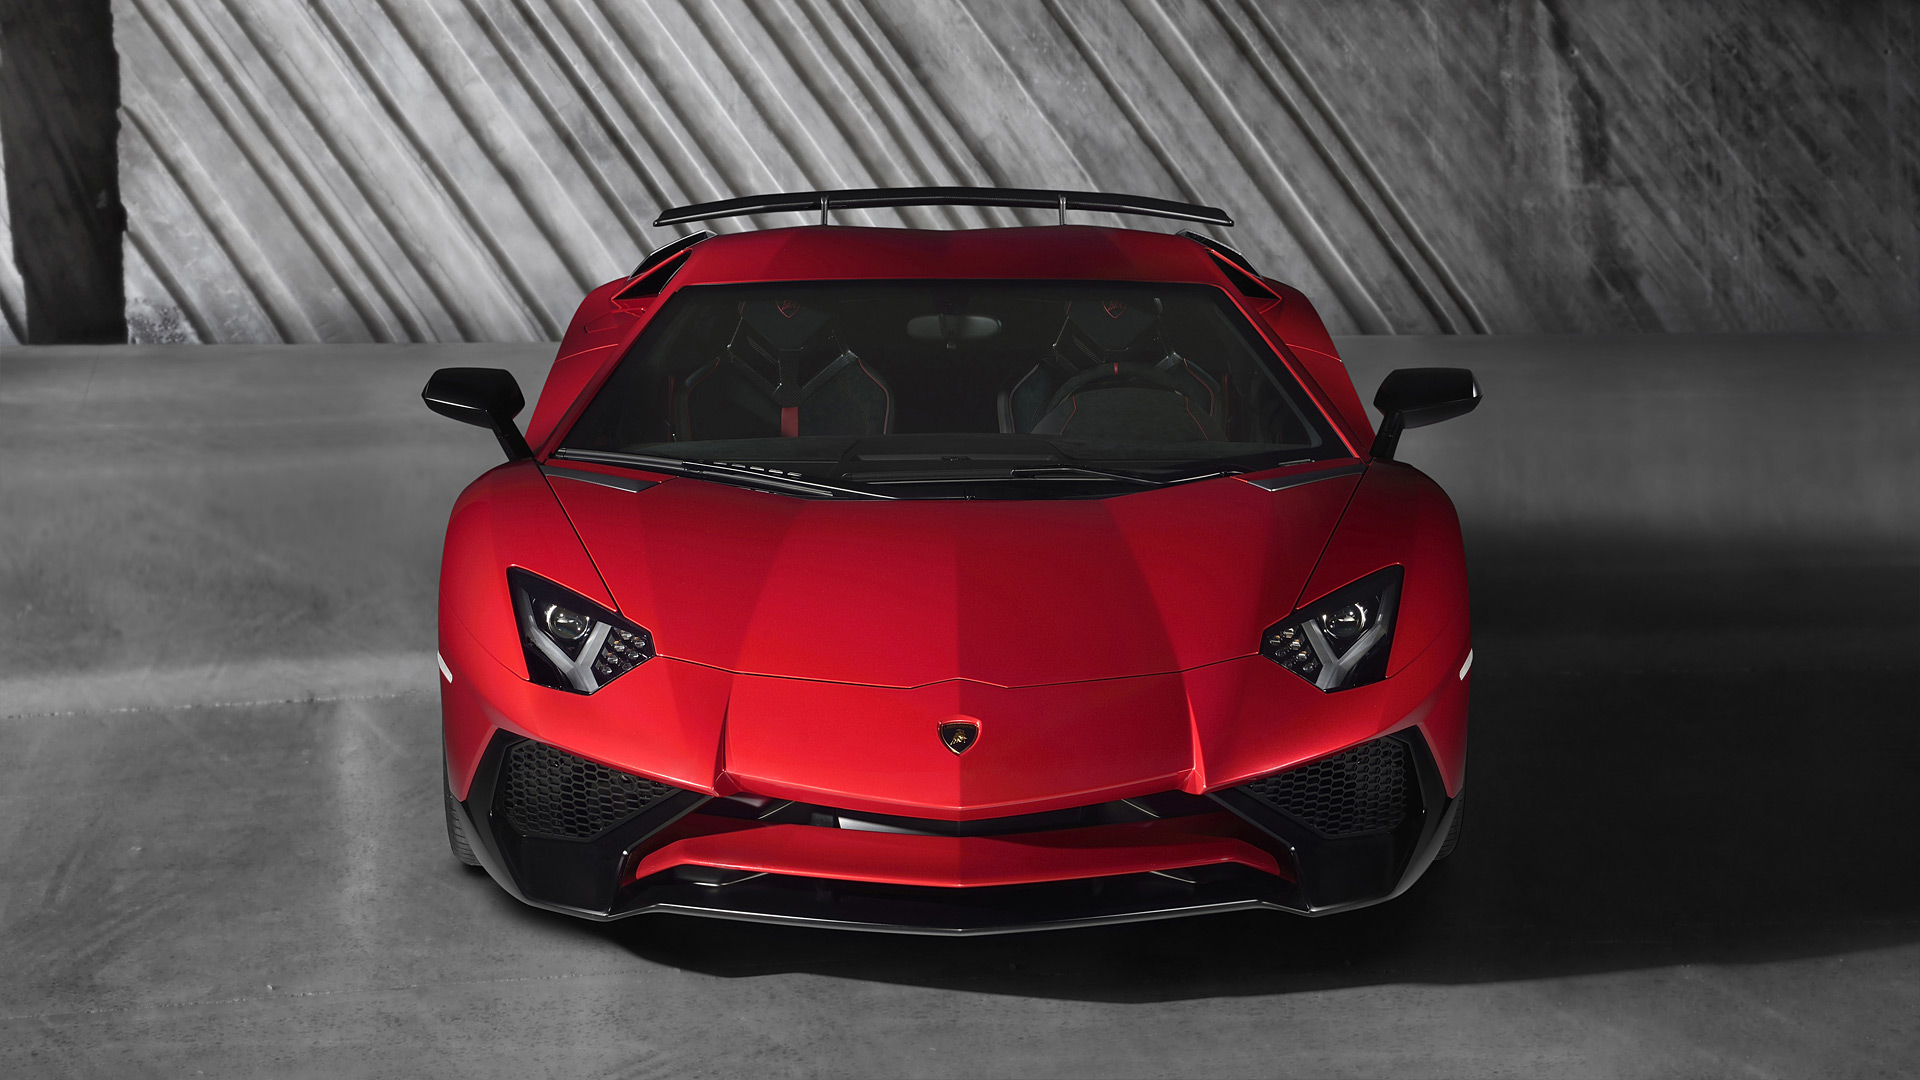 LAMBORGHINI AVENTADOR RENTAL – A CAR MAKES YOUR HEART RACE